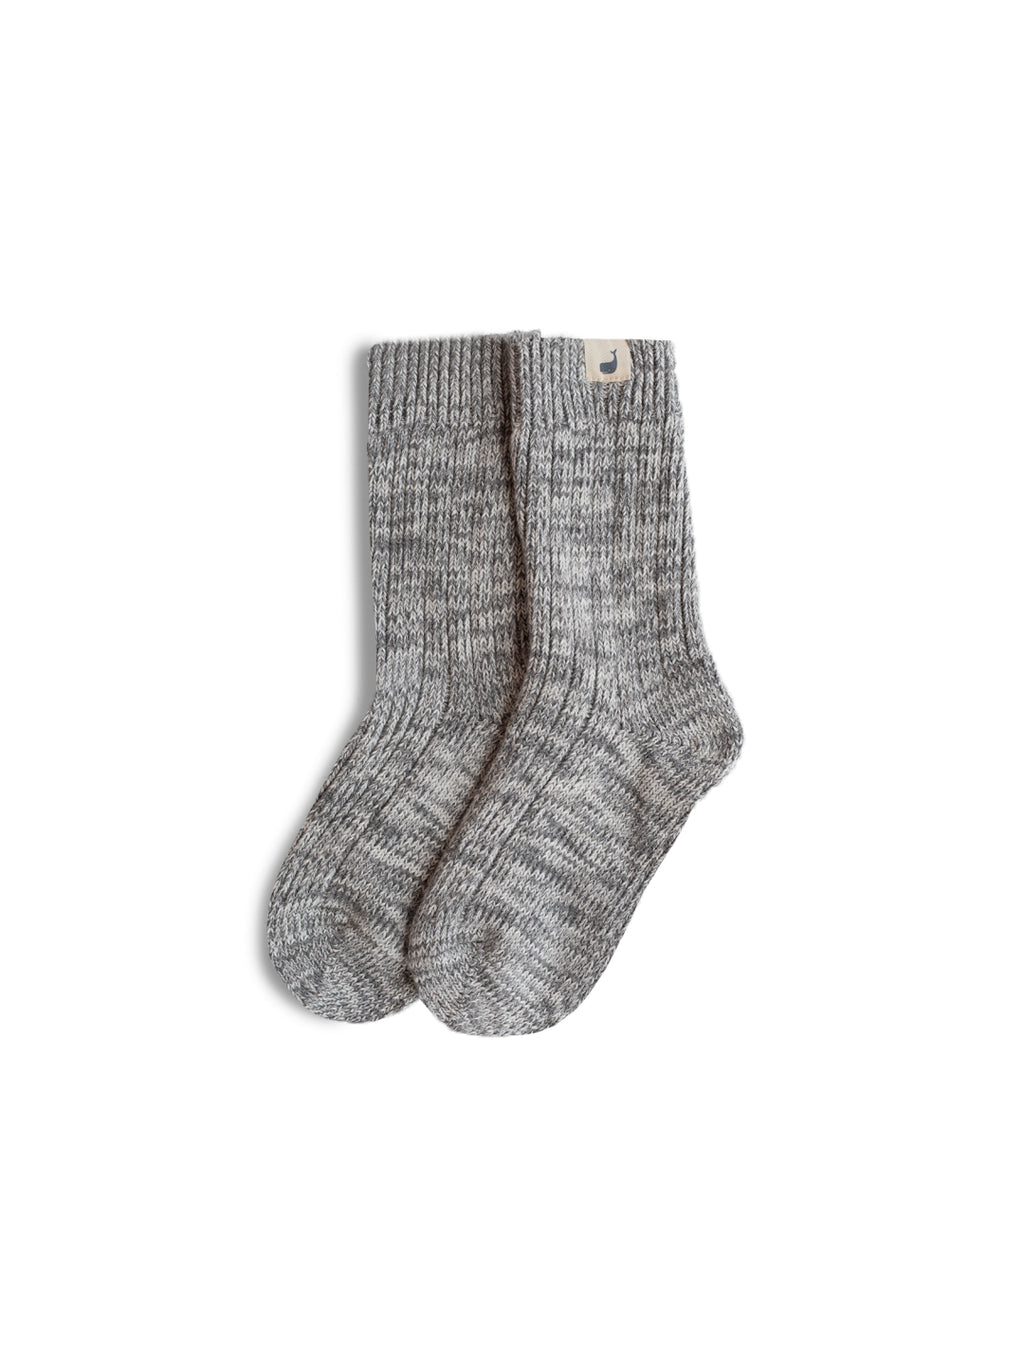 Alofi Socks Woman - Grey